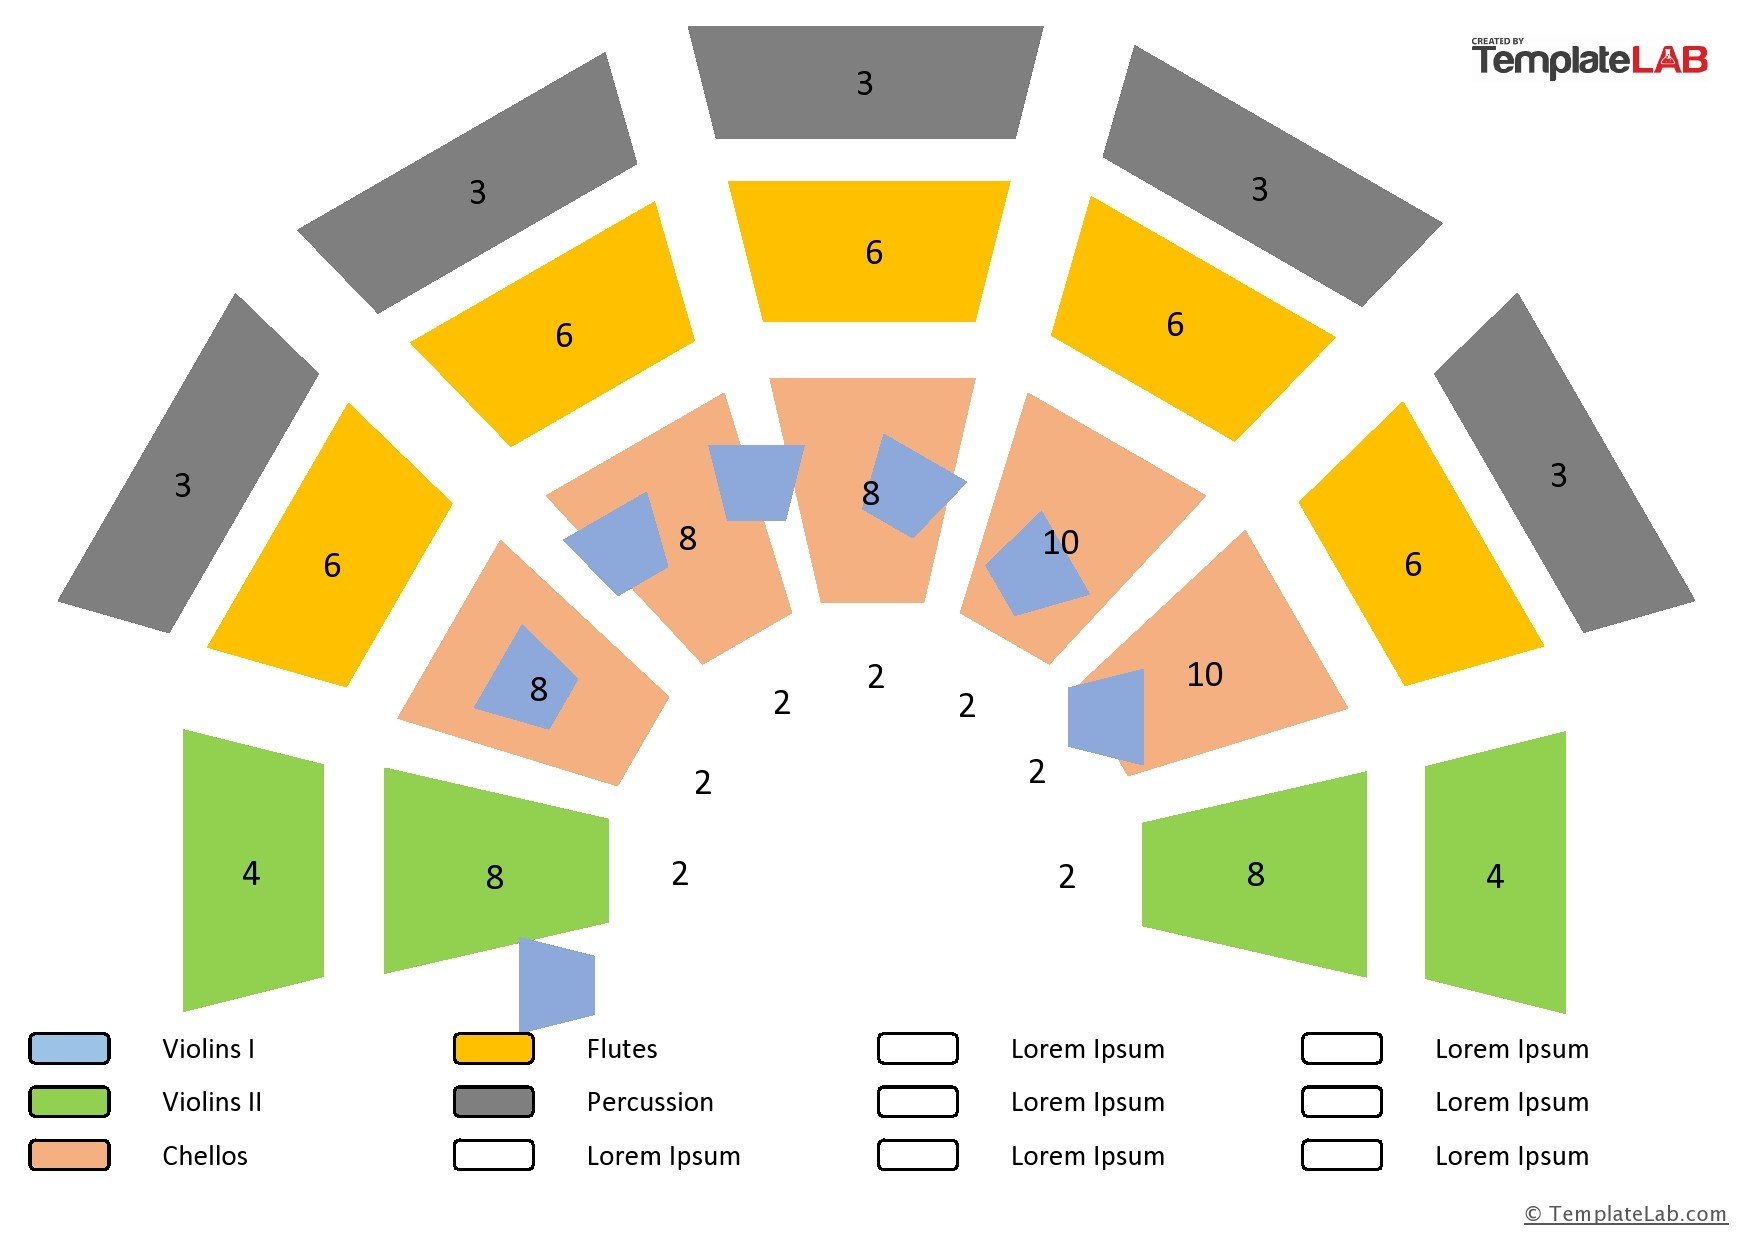 Free Orchestra Seating Chart Template - TemplateLab.com